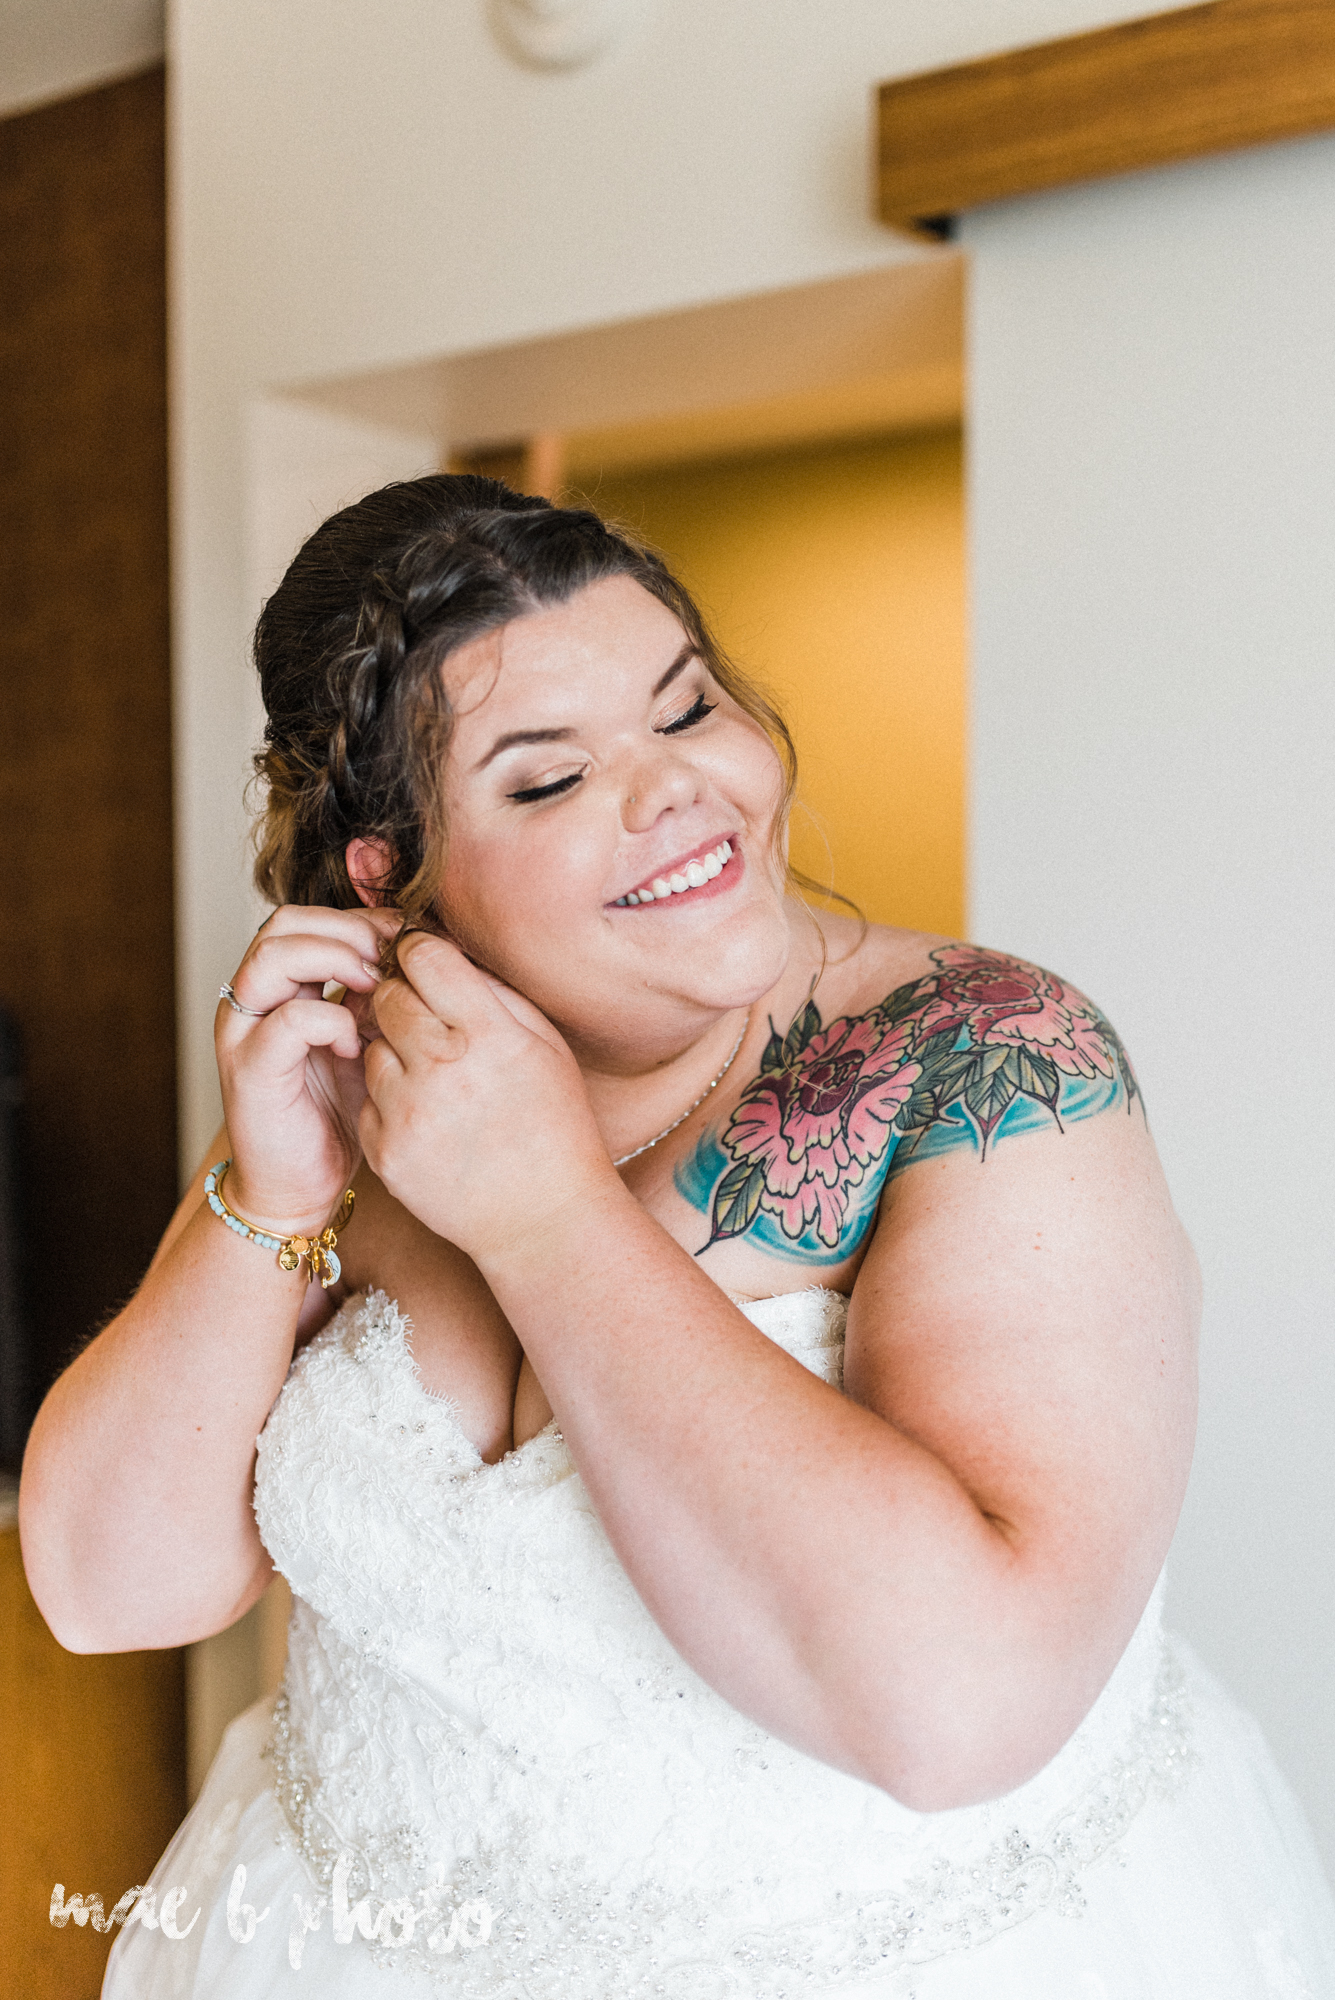 Kristina and ryan's personal vintage glam fall wedding at disalvo's station restaurant and the arnold palmer latrobe country club in latrobe, pa photographed by youngstown wedding photographer mae b photo-16.jpg